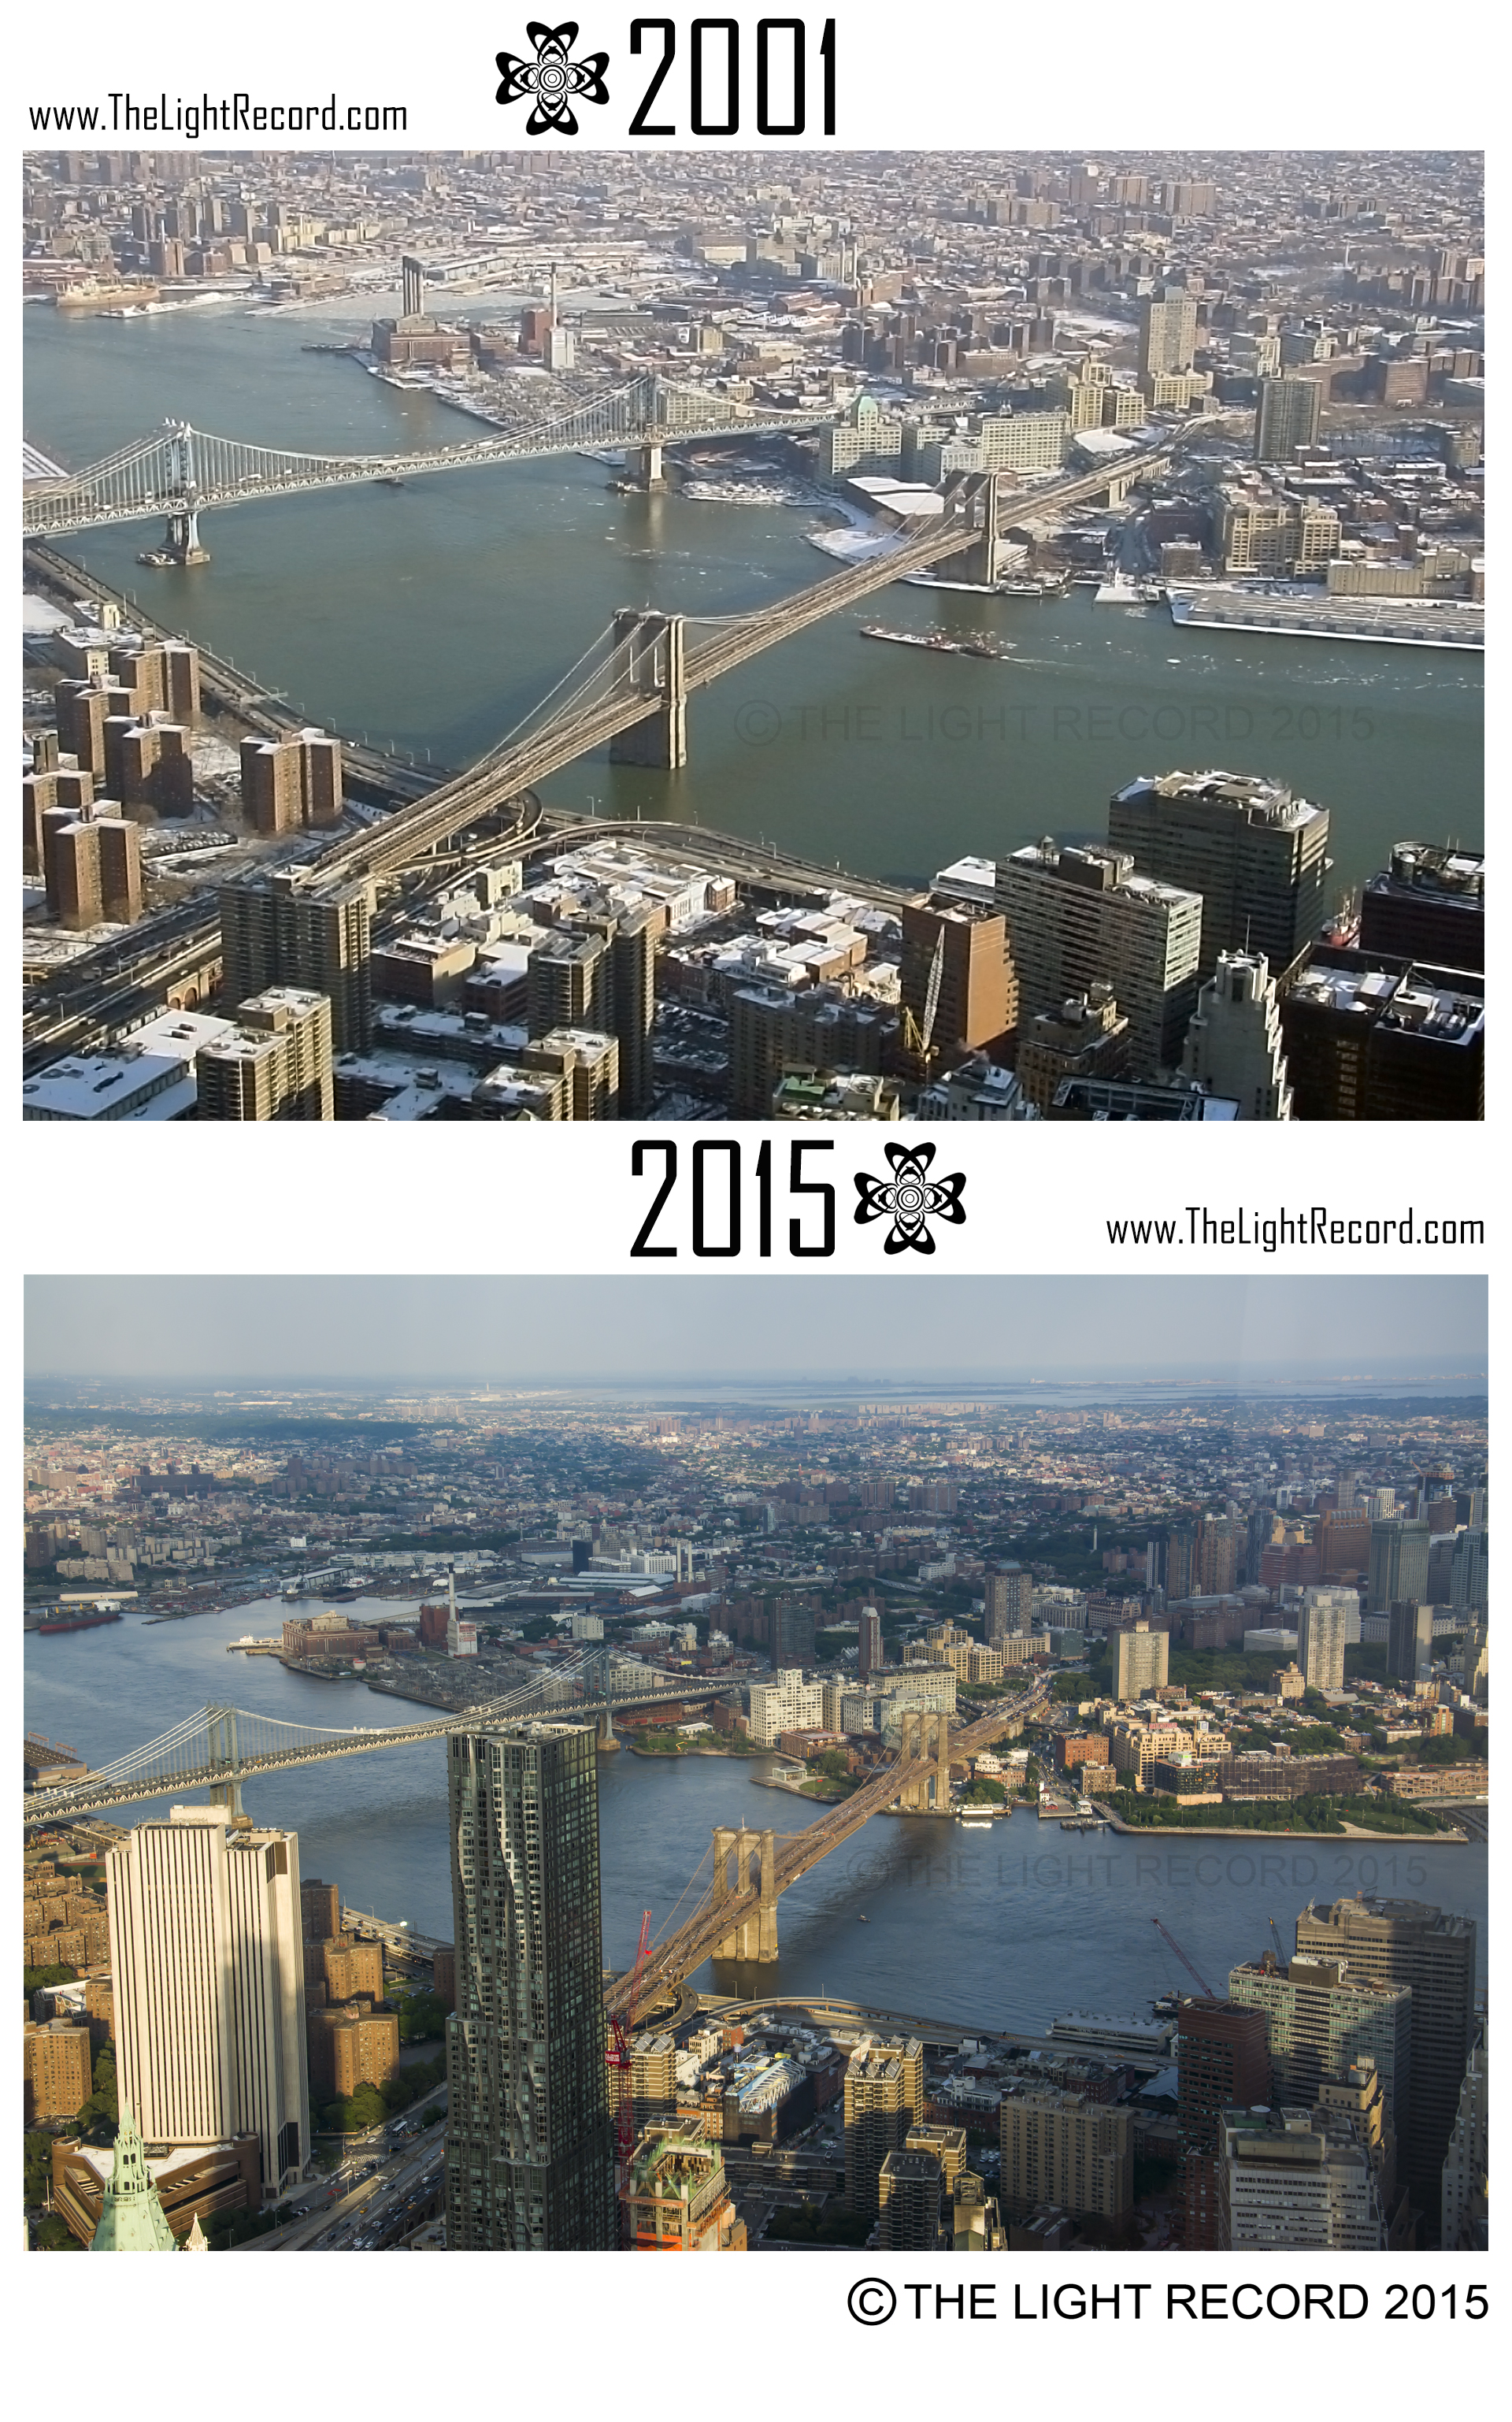 The Brooklyn waterfront along the East River has changed remarkably. In fact, Brooklyn may have undergone the most thorough transformation of all of the 5 boroughs since 9/11. Hipsters cannot recall a time pre-Dumbo.